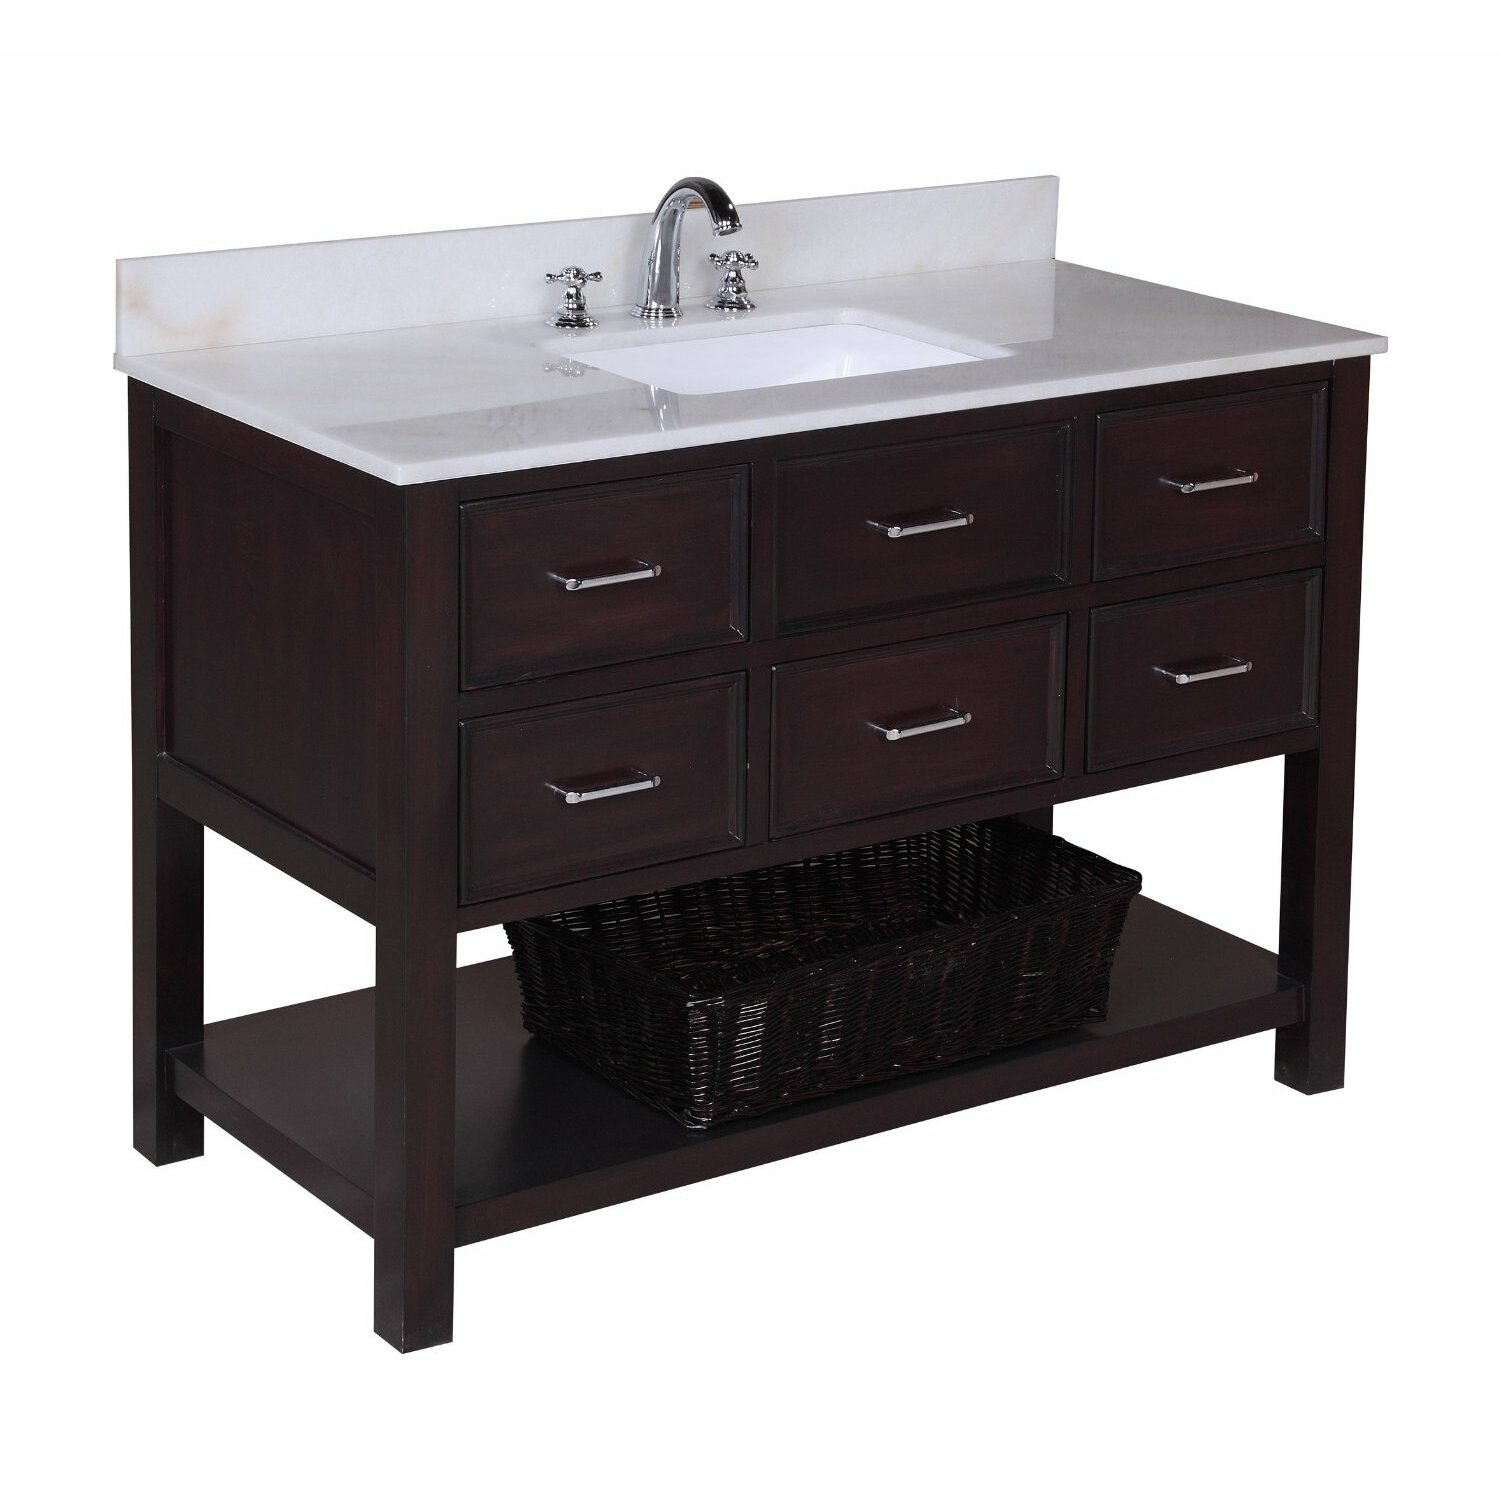 Kitchen Cabinets New Hampshire Kbc New Hampshire 48 Single Bathroom Vanity Set Reviews Wayfair